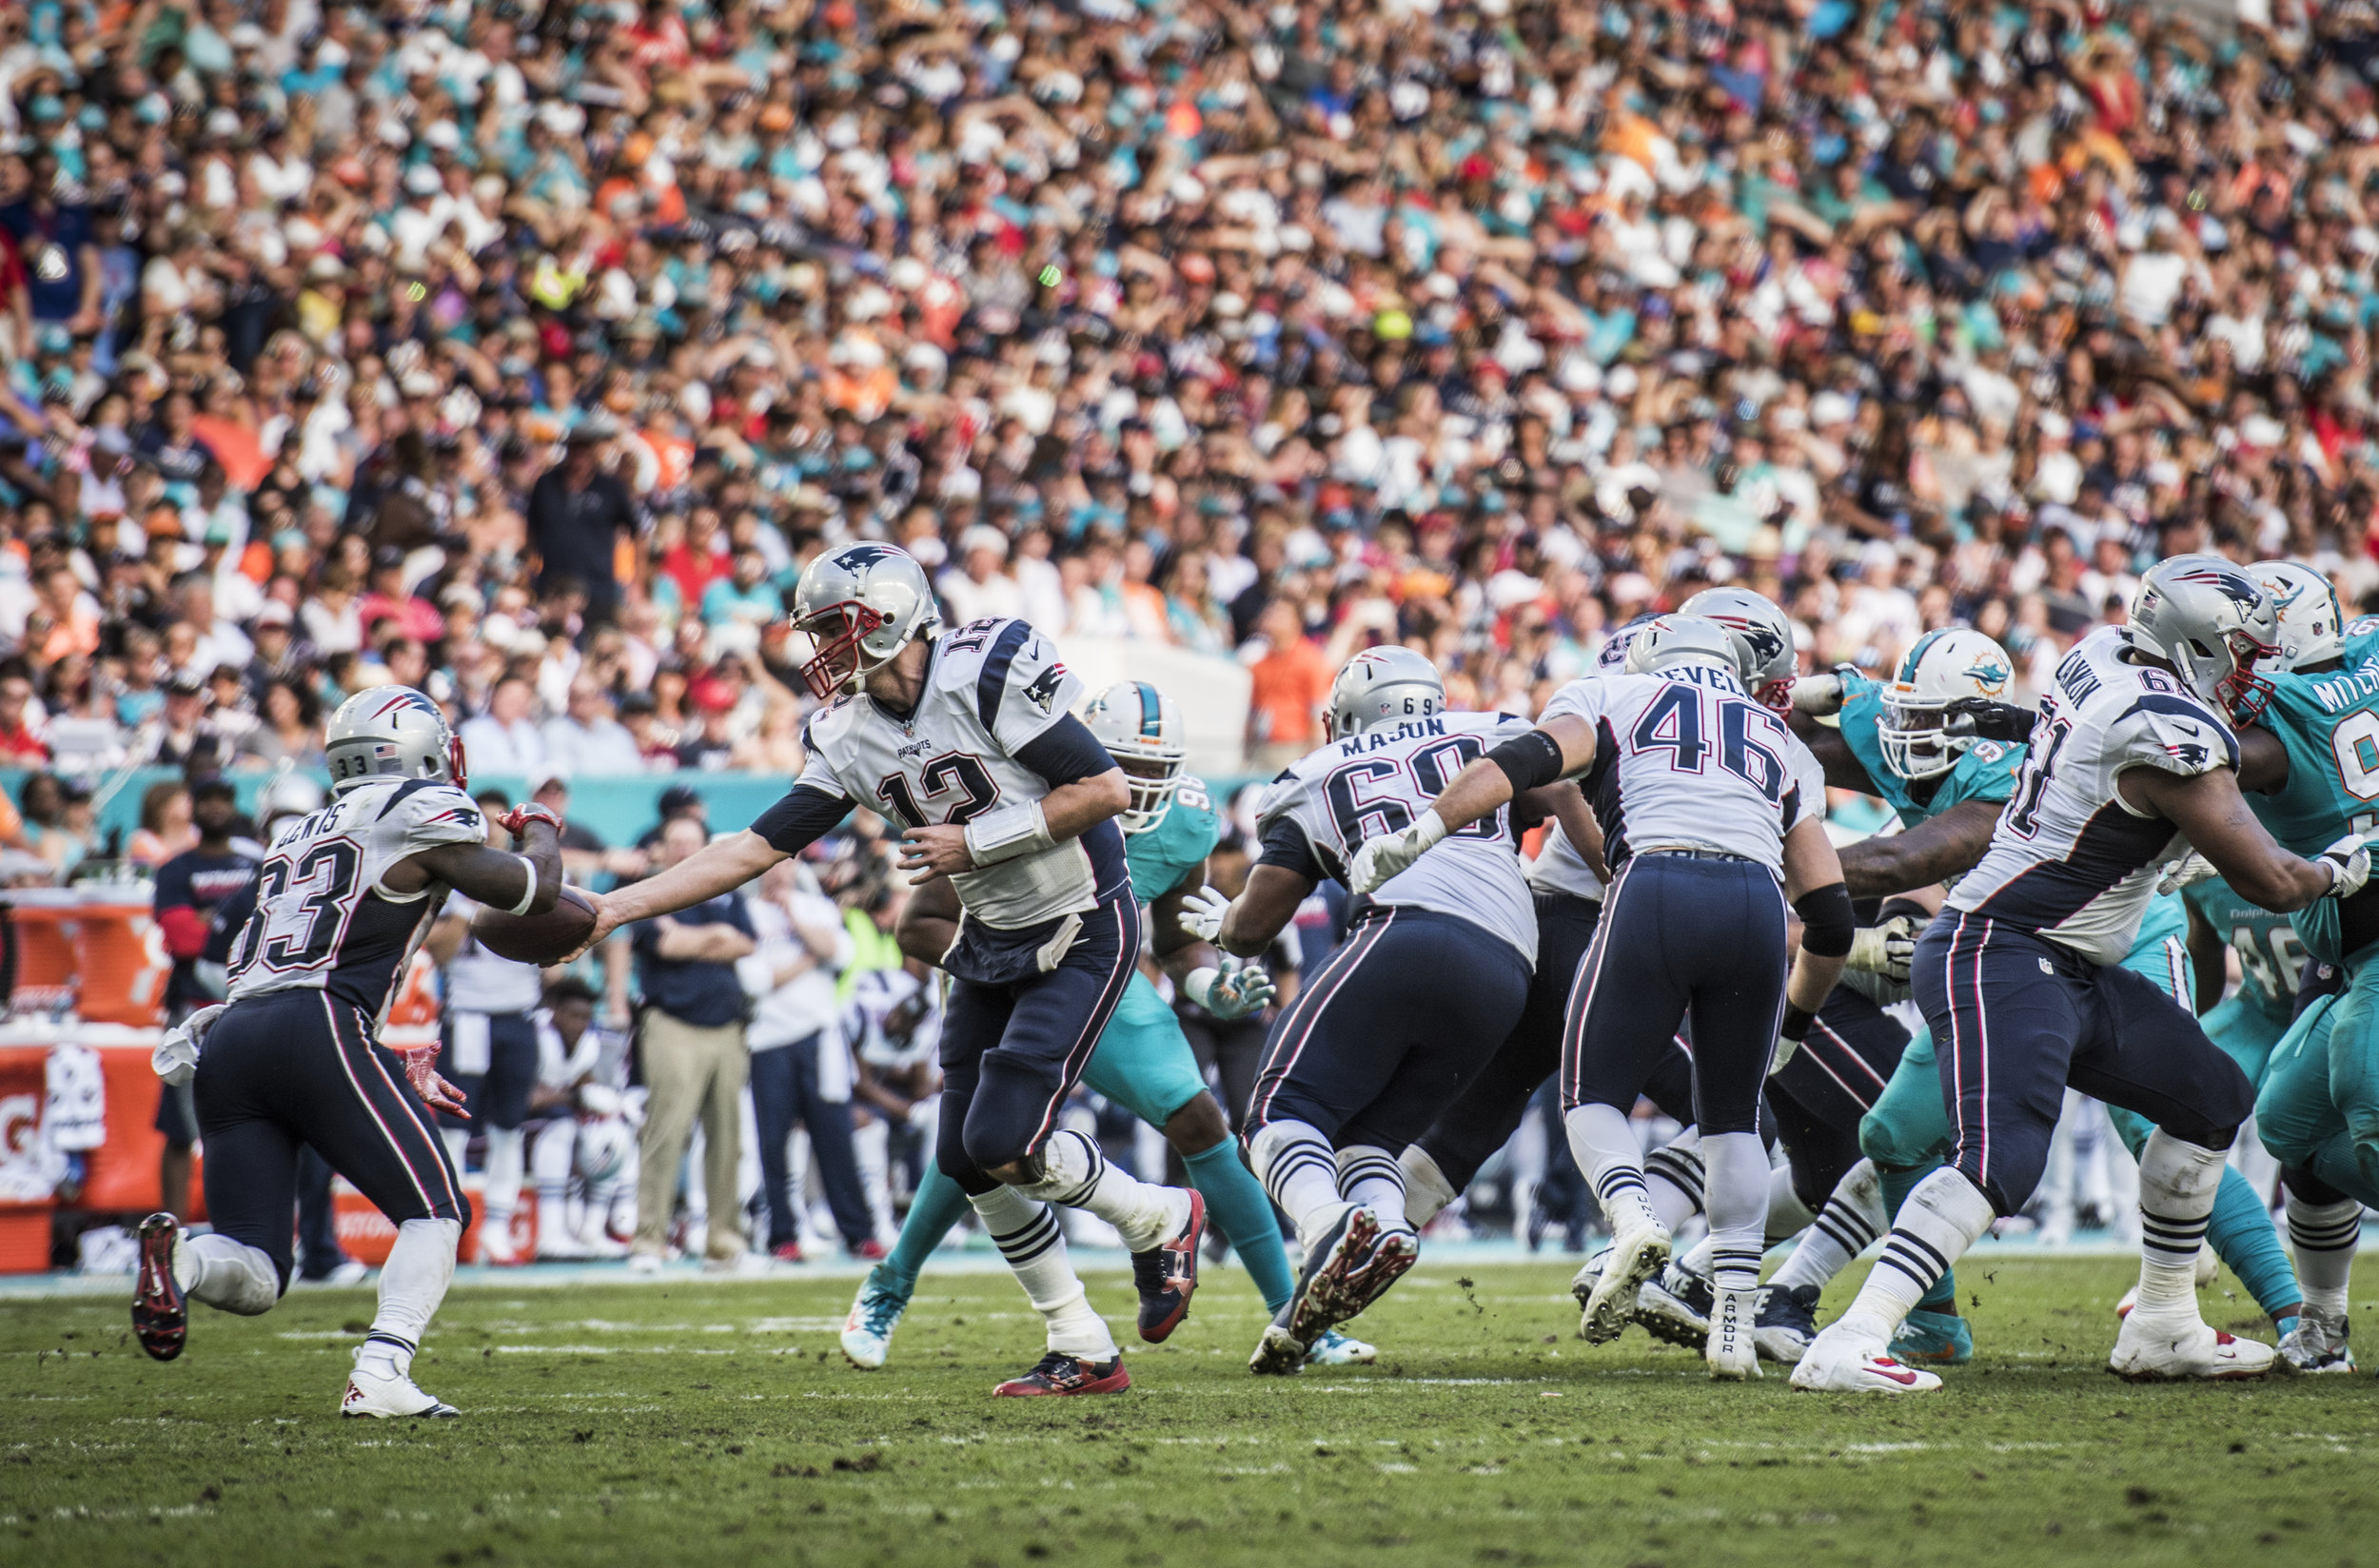 New England Patriots quarterback Tom Brady (12) hands it off to running back Dion Lewis (33) at Hard Rock Stadium in Miami Gardens, Florida, January 1, 2017. Lewis finished with 42 yards on 10 carries.